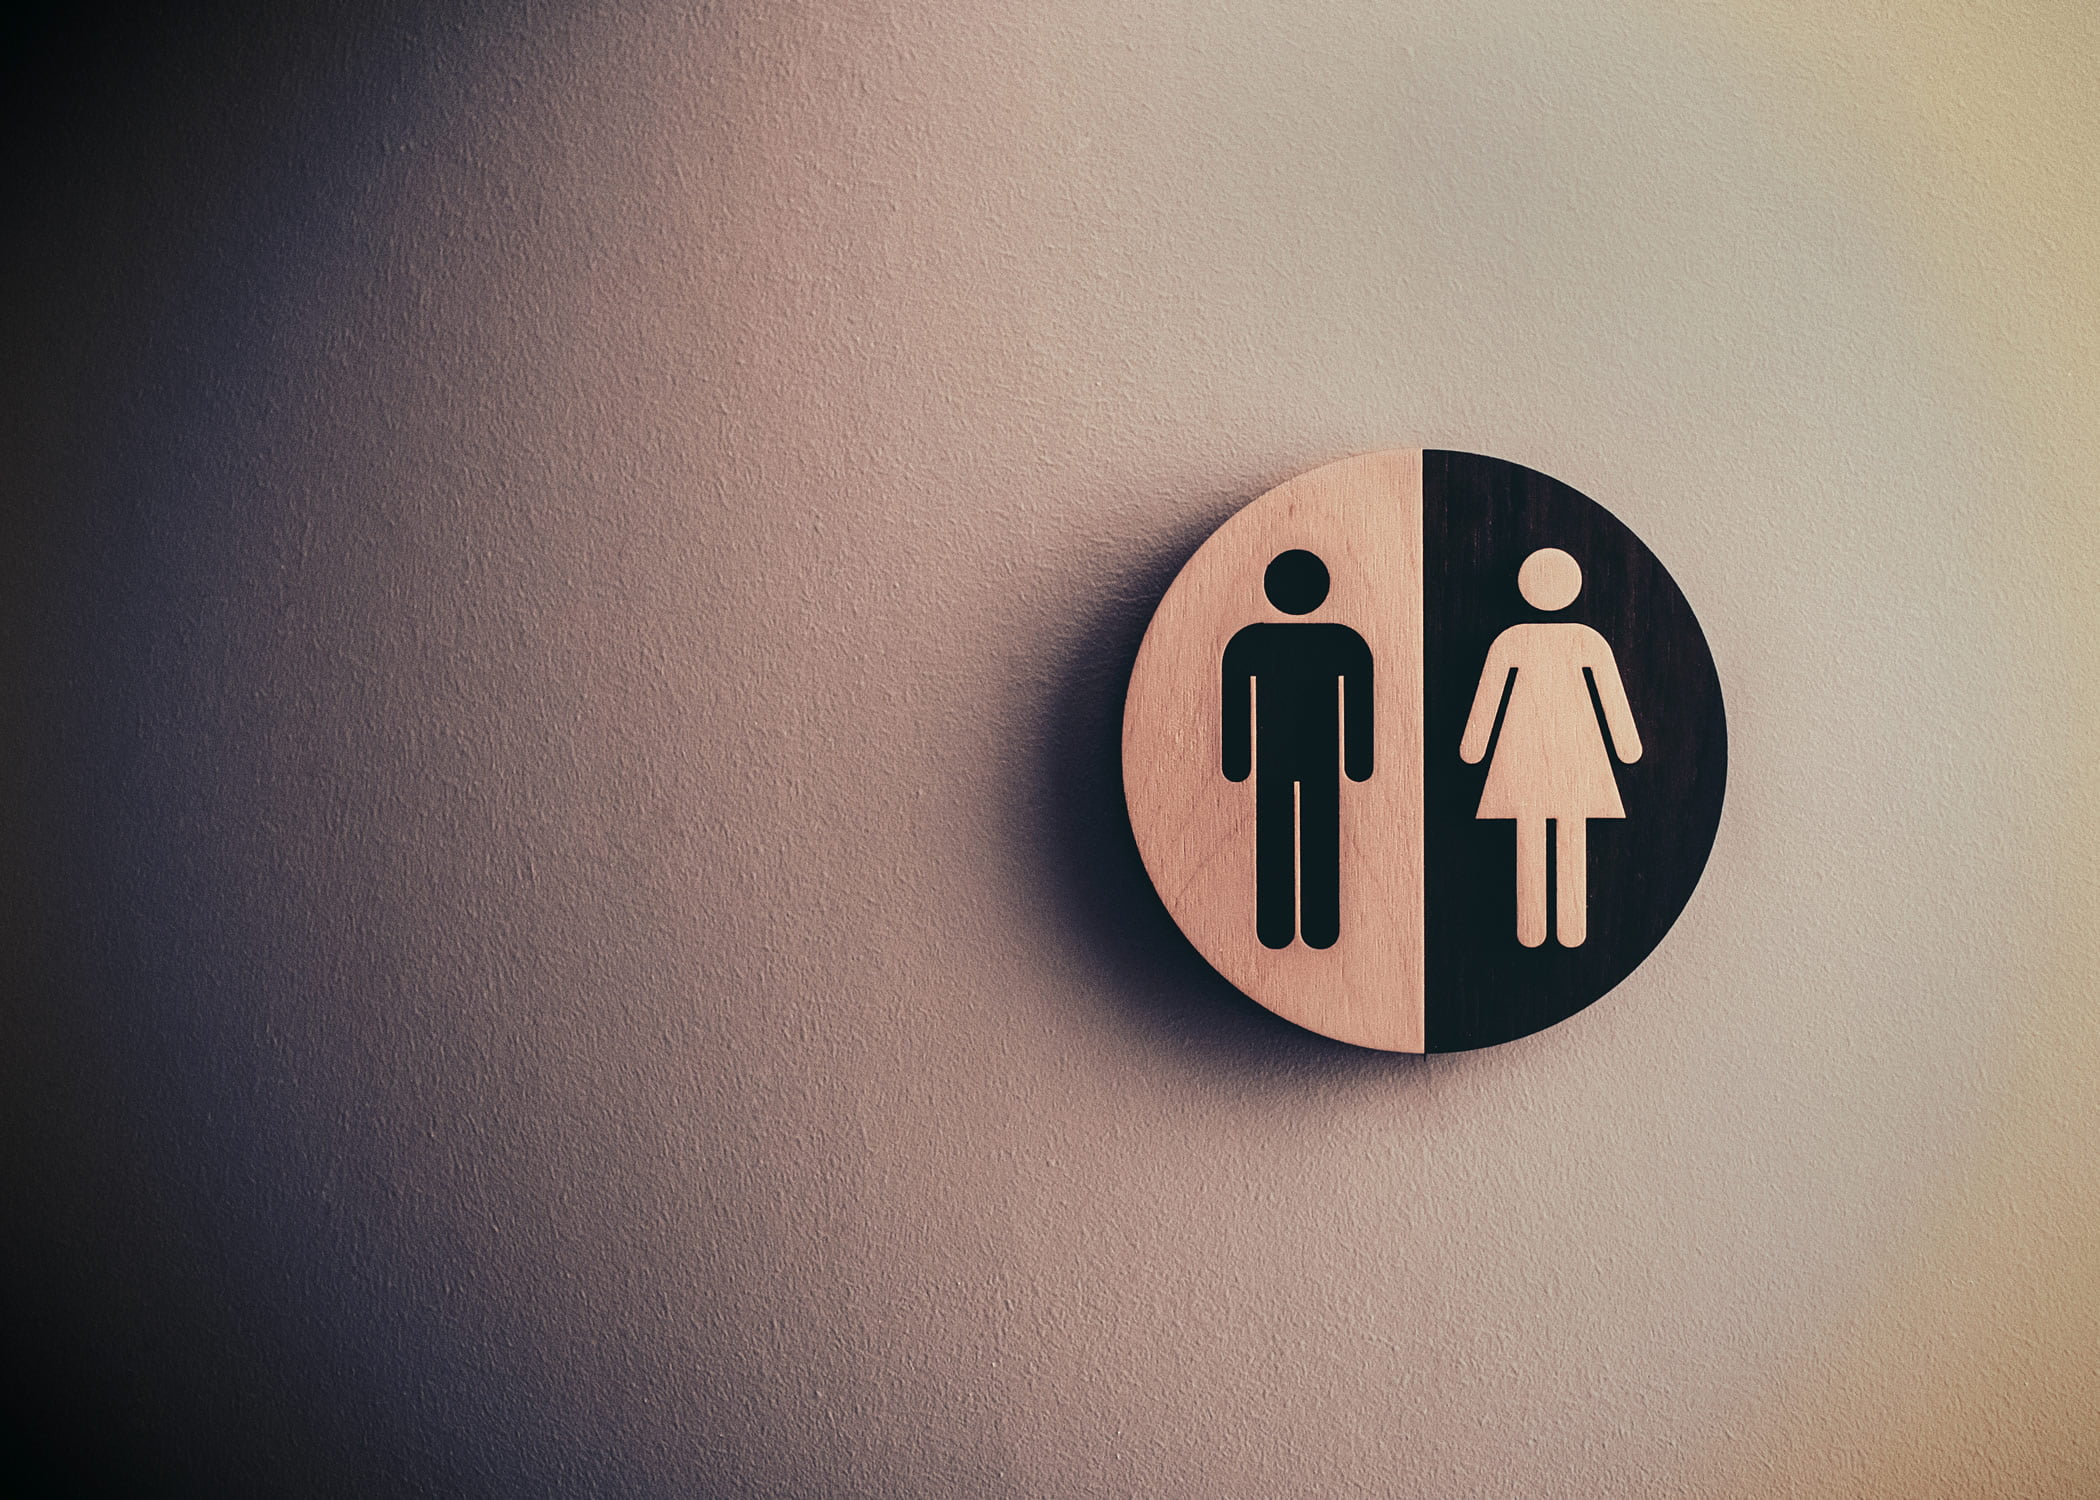 Jacksonville ILG - Gender Identity and Sexual Orientation Final Regulations